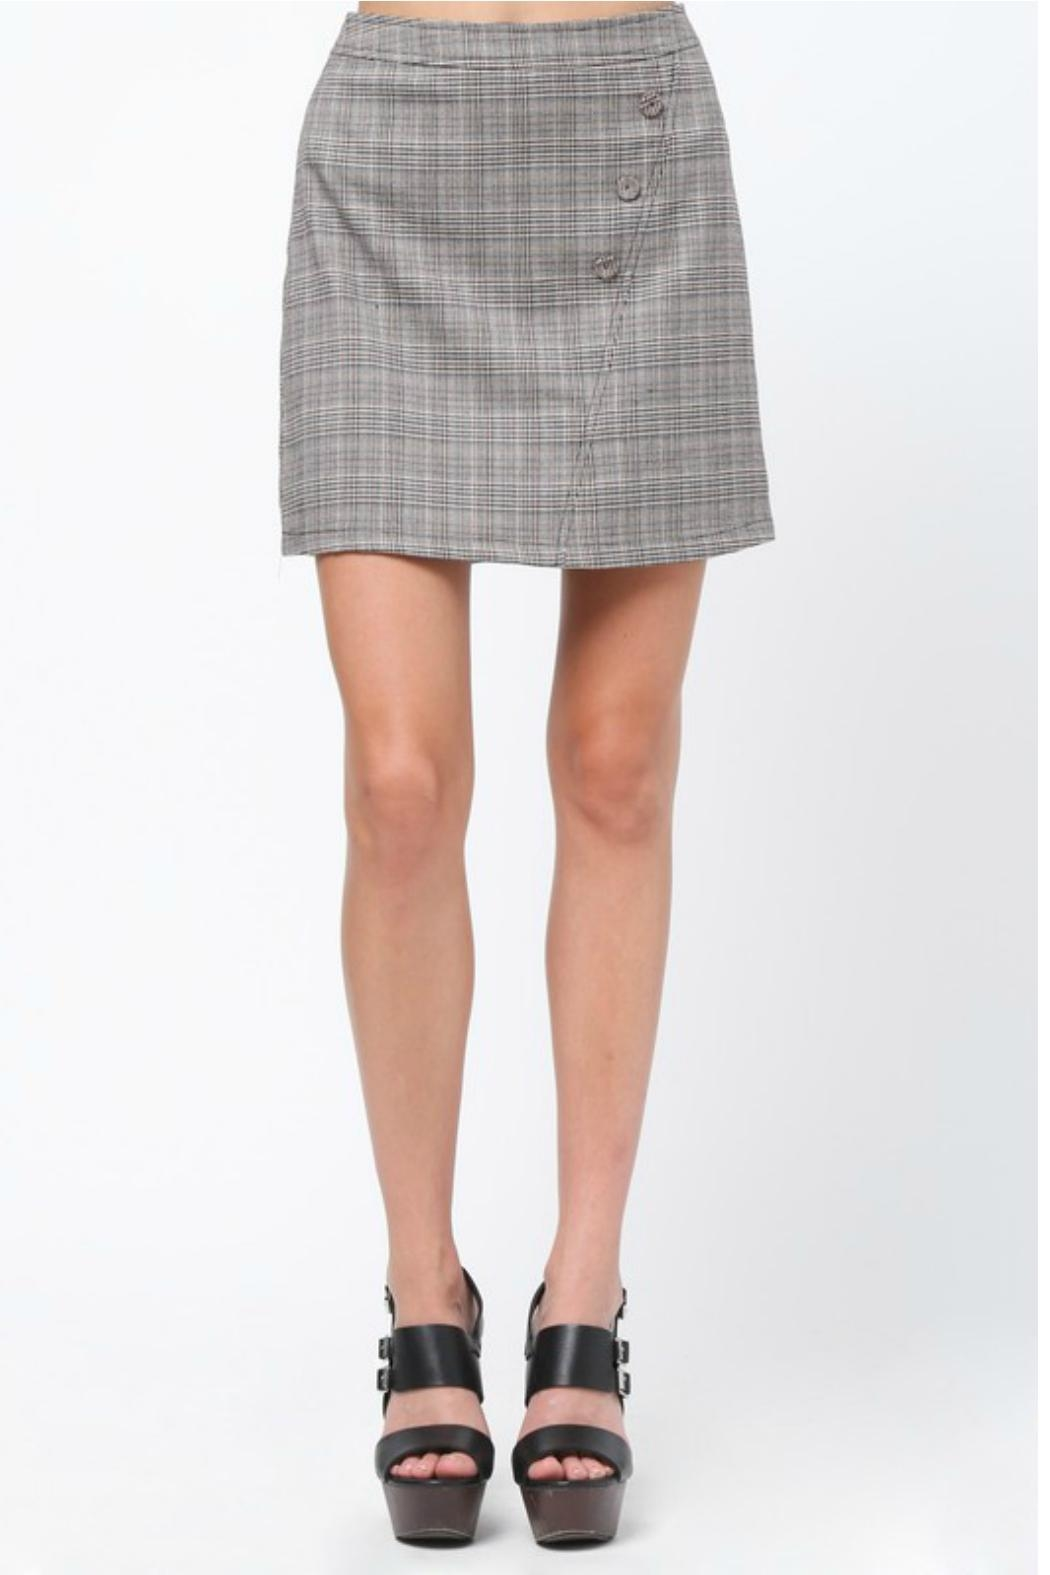 Very J Plaid A-Line Skirt - Front Cropped Image